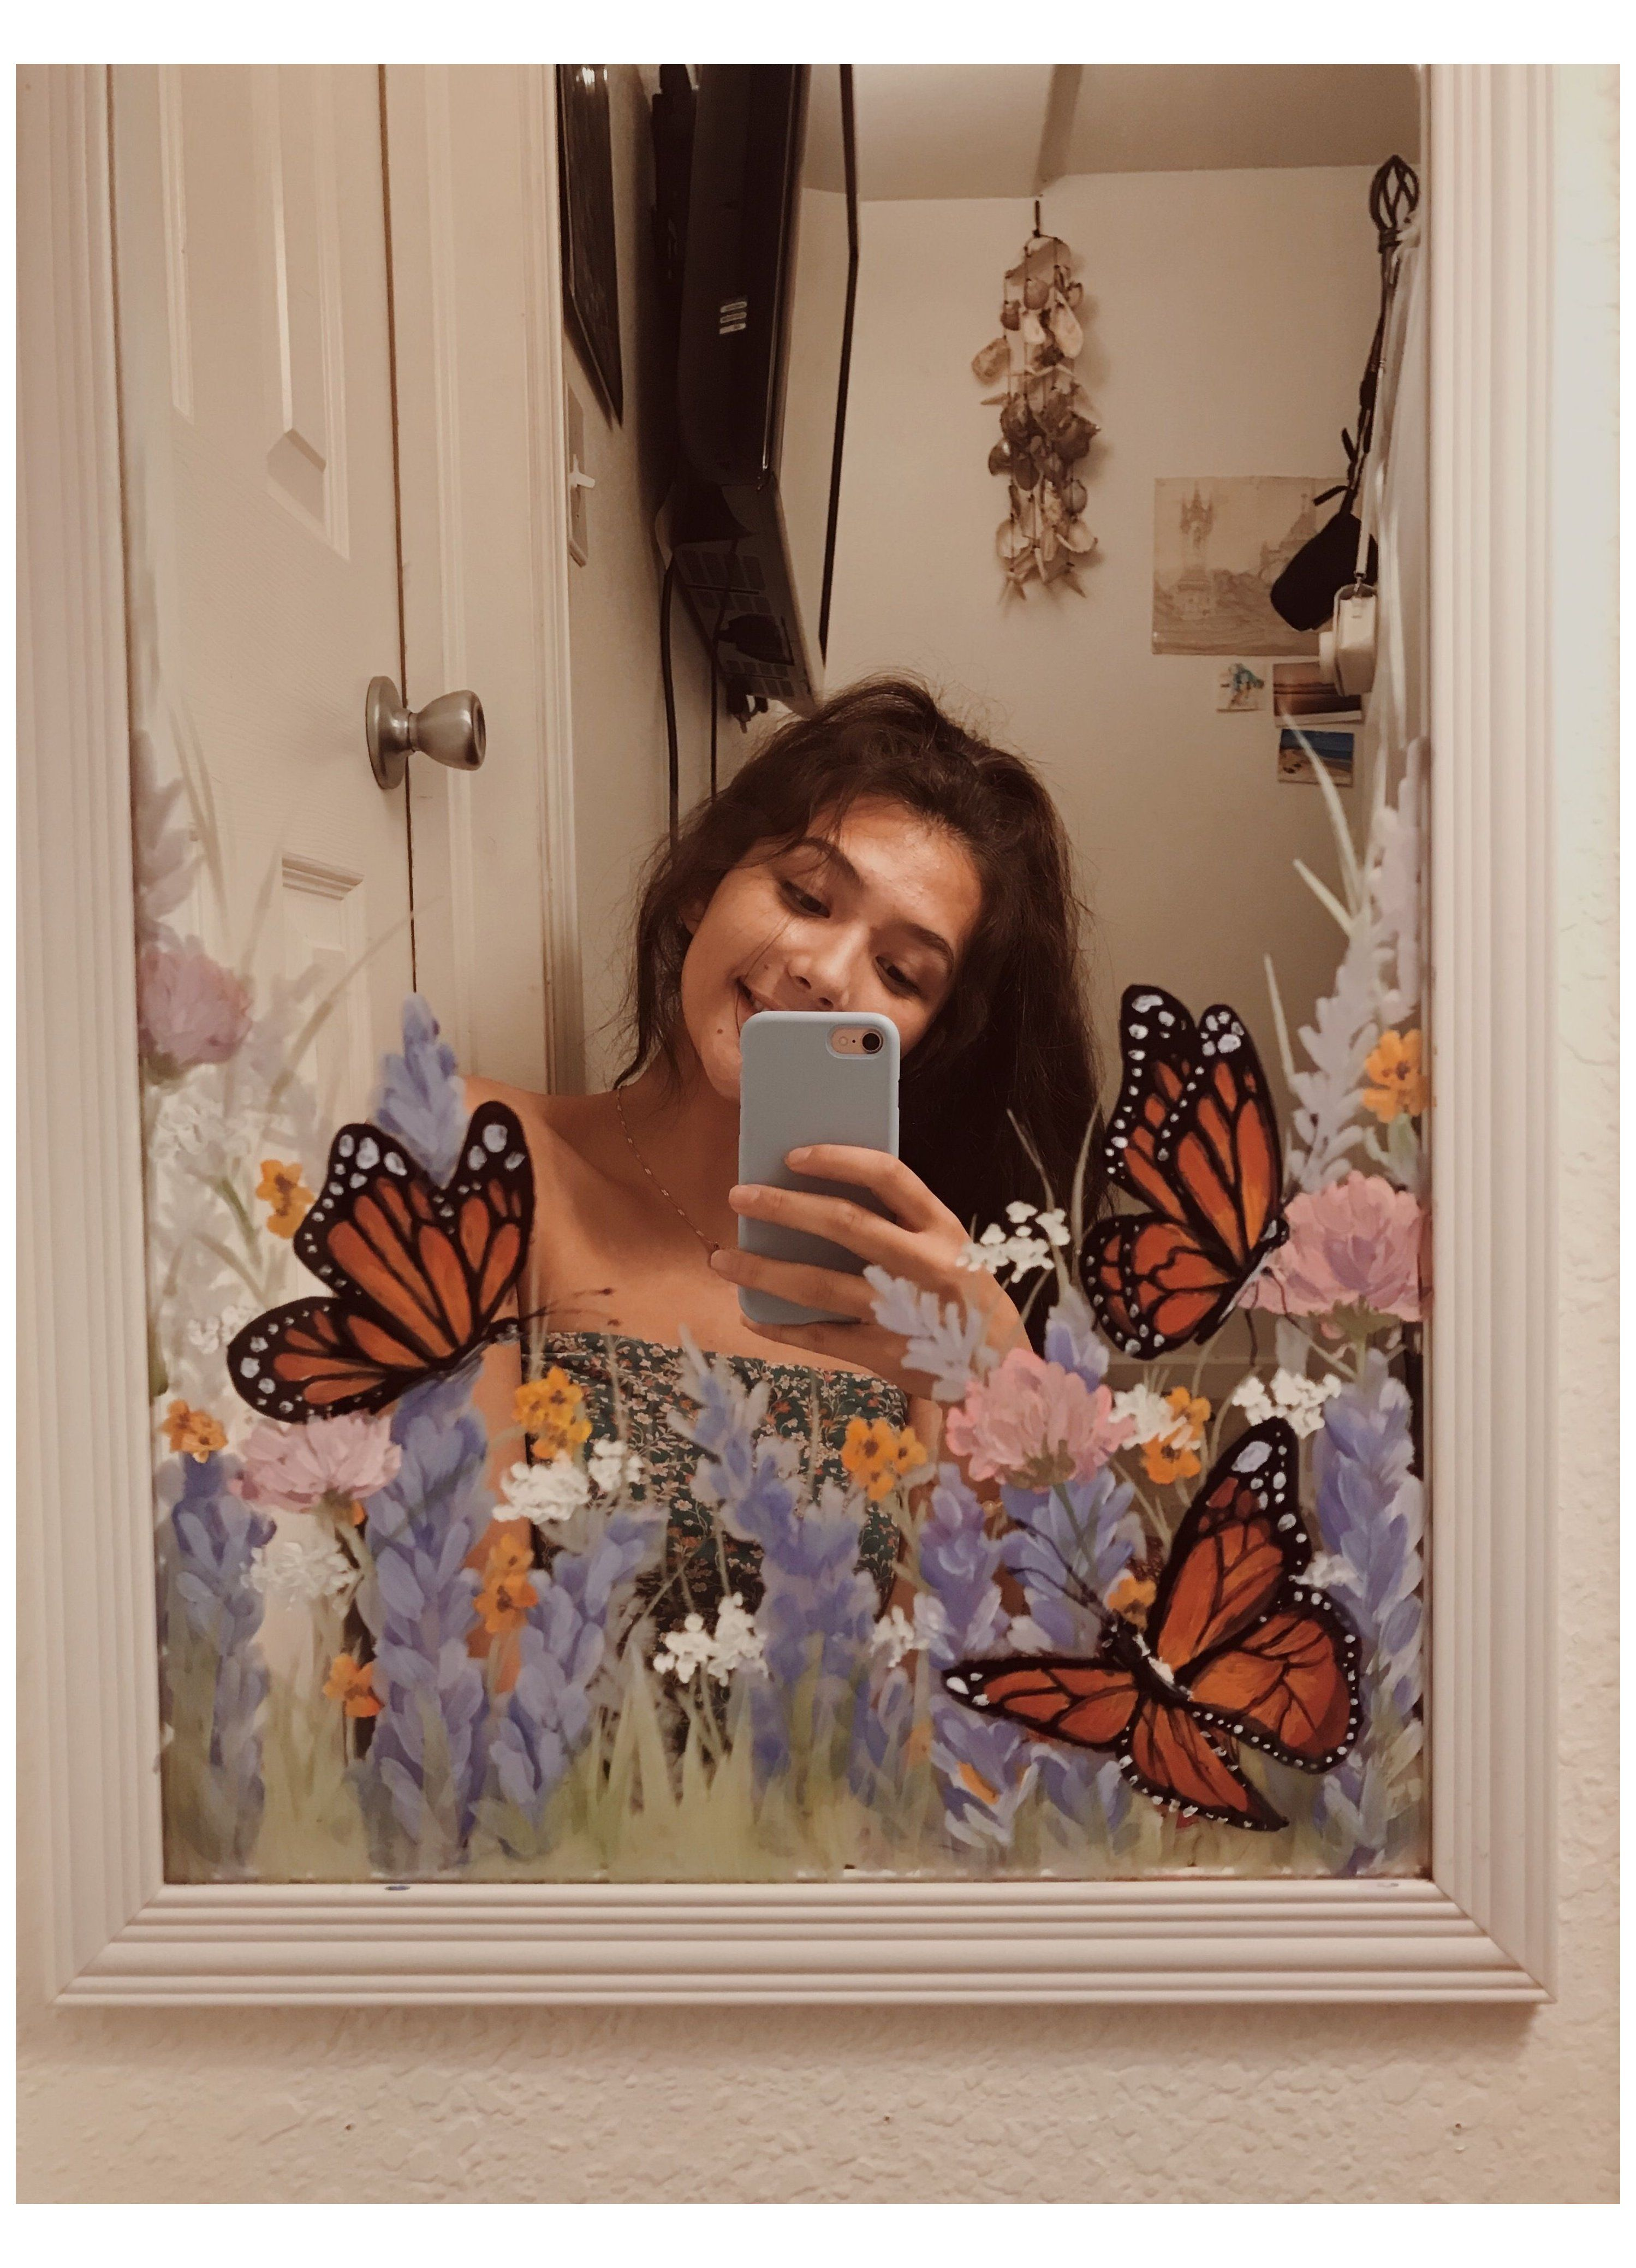 Use Acrylic Paint And Do Something Artsy To Ur Mir Mirror Painting Ideas Aesthetic Mirrorpainting Mirror Painting Painted Mirror Art Mirror Painting Ideas